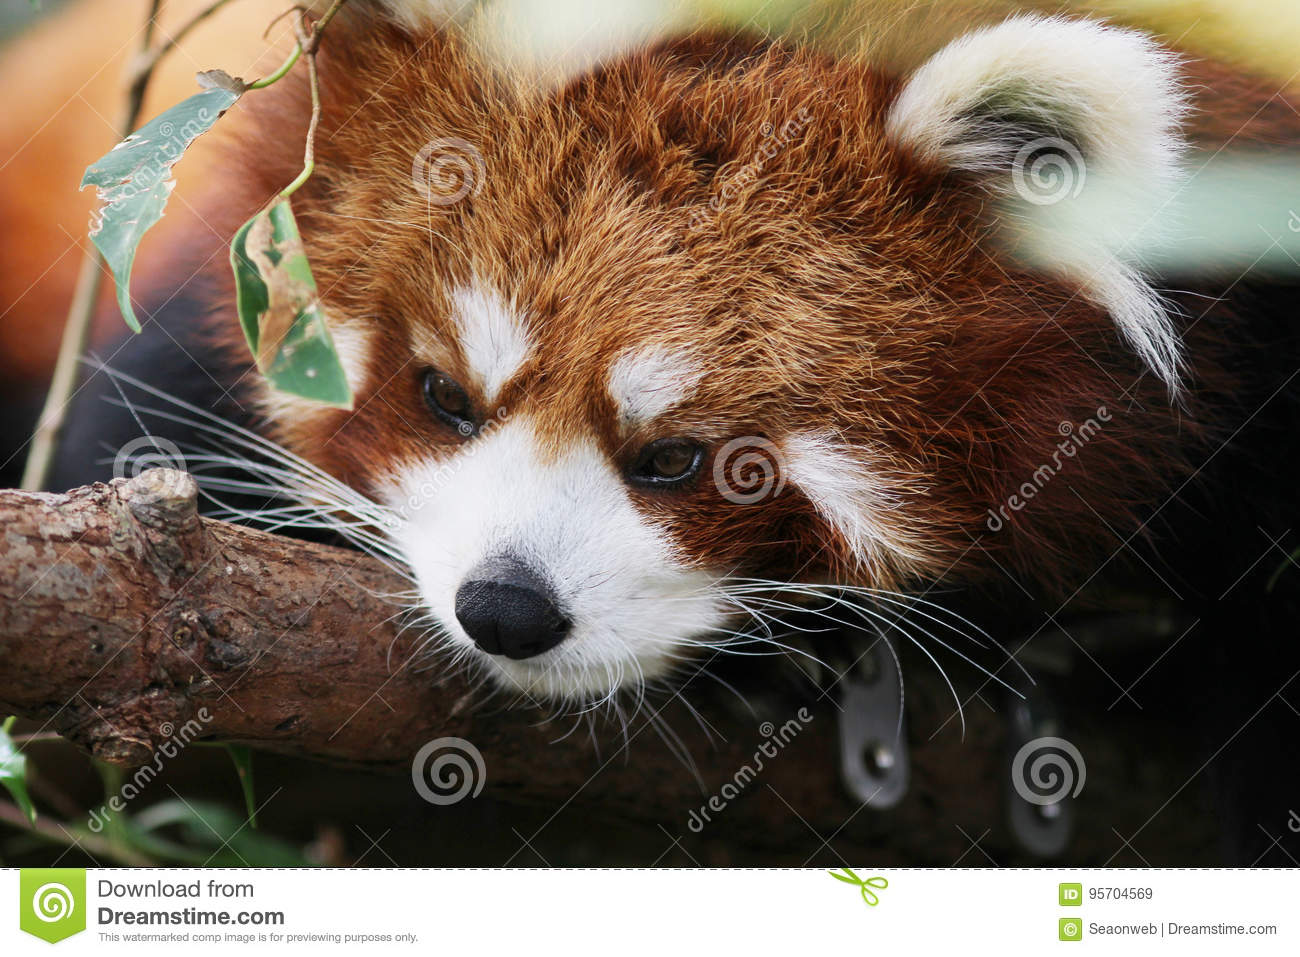 Image of: Endangered Species Little Red Panda Endangered Species Dreamstimecom Little Red Panda Endangered Species Stock Image Image Of Unique